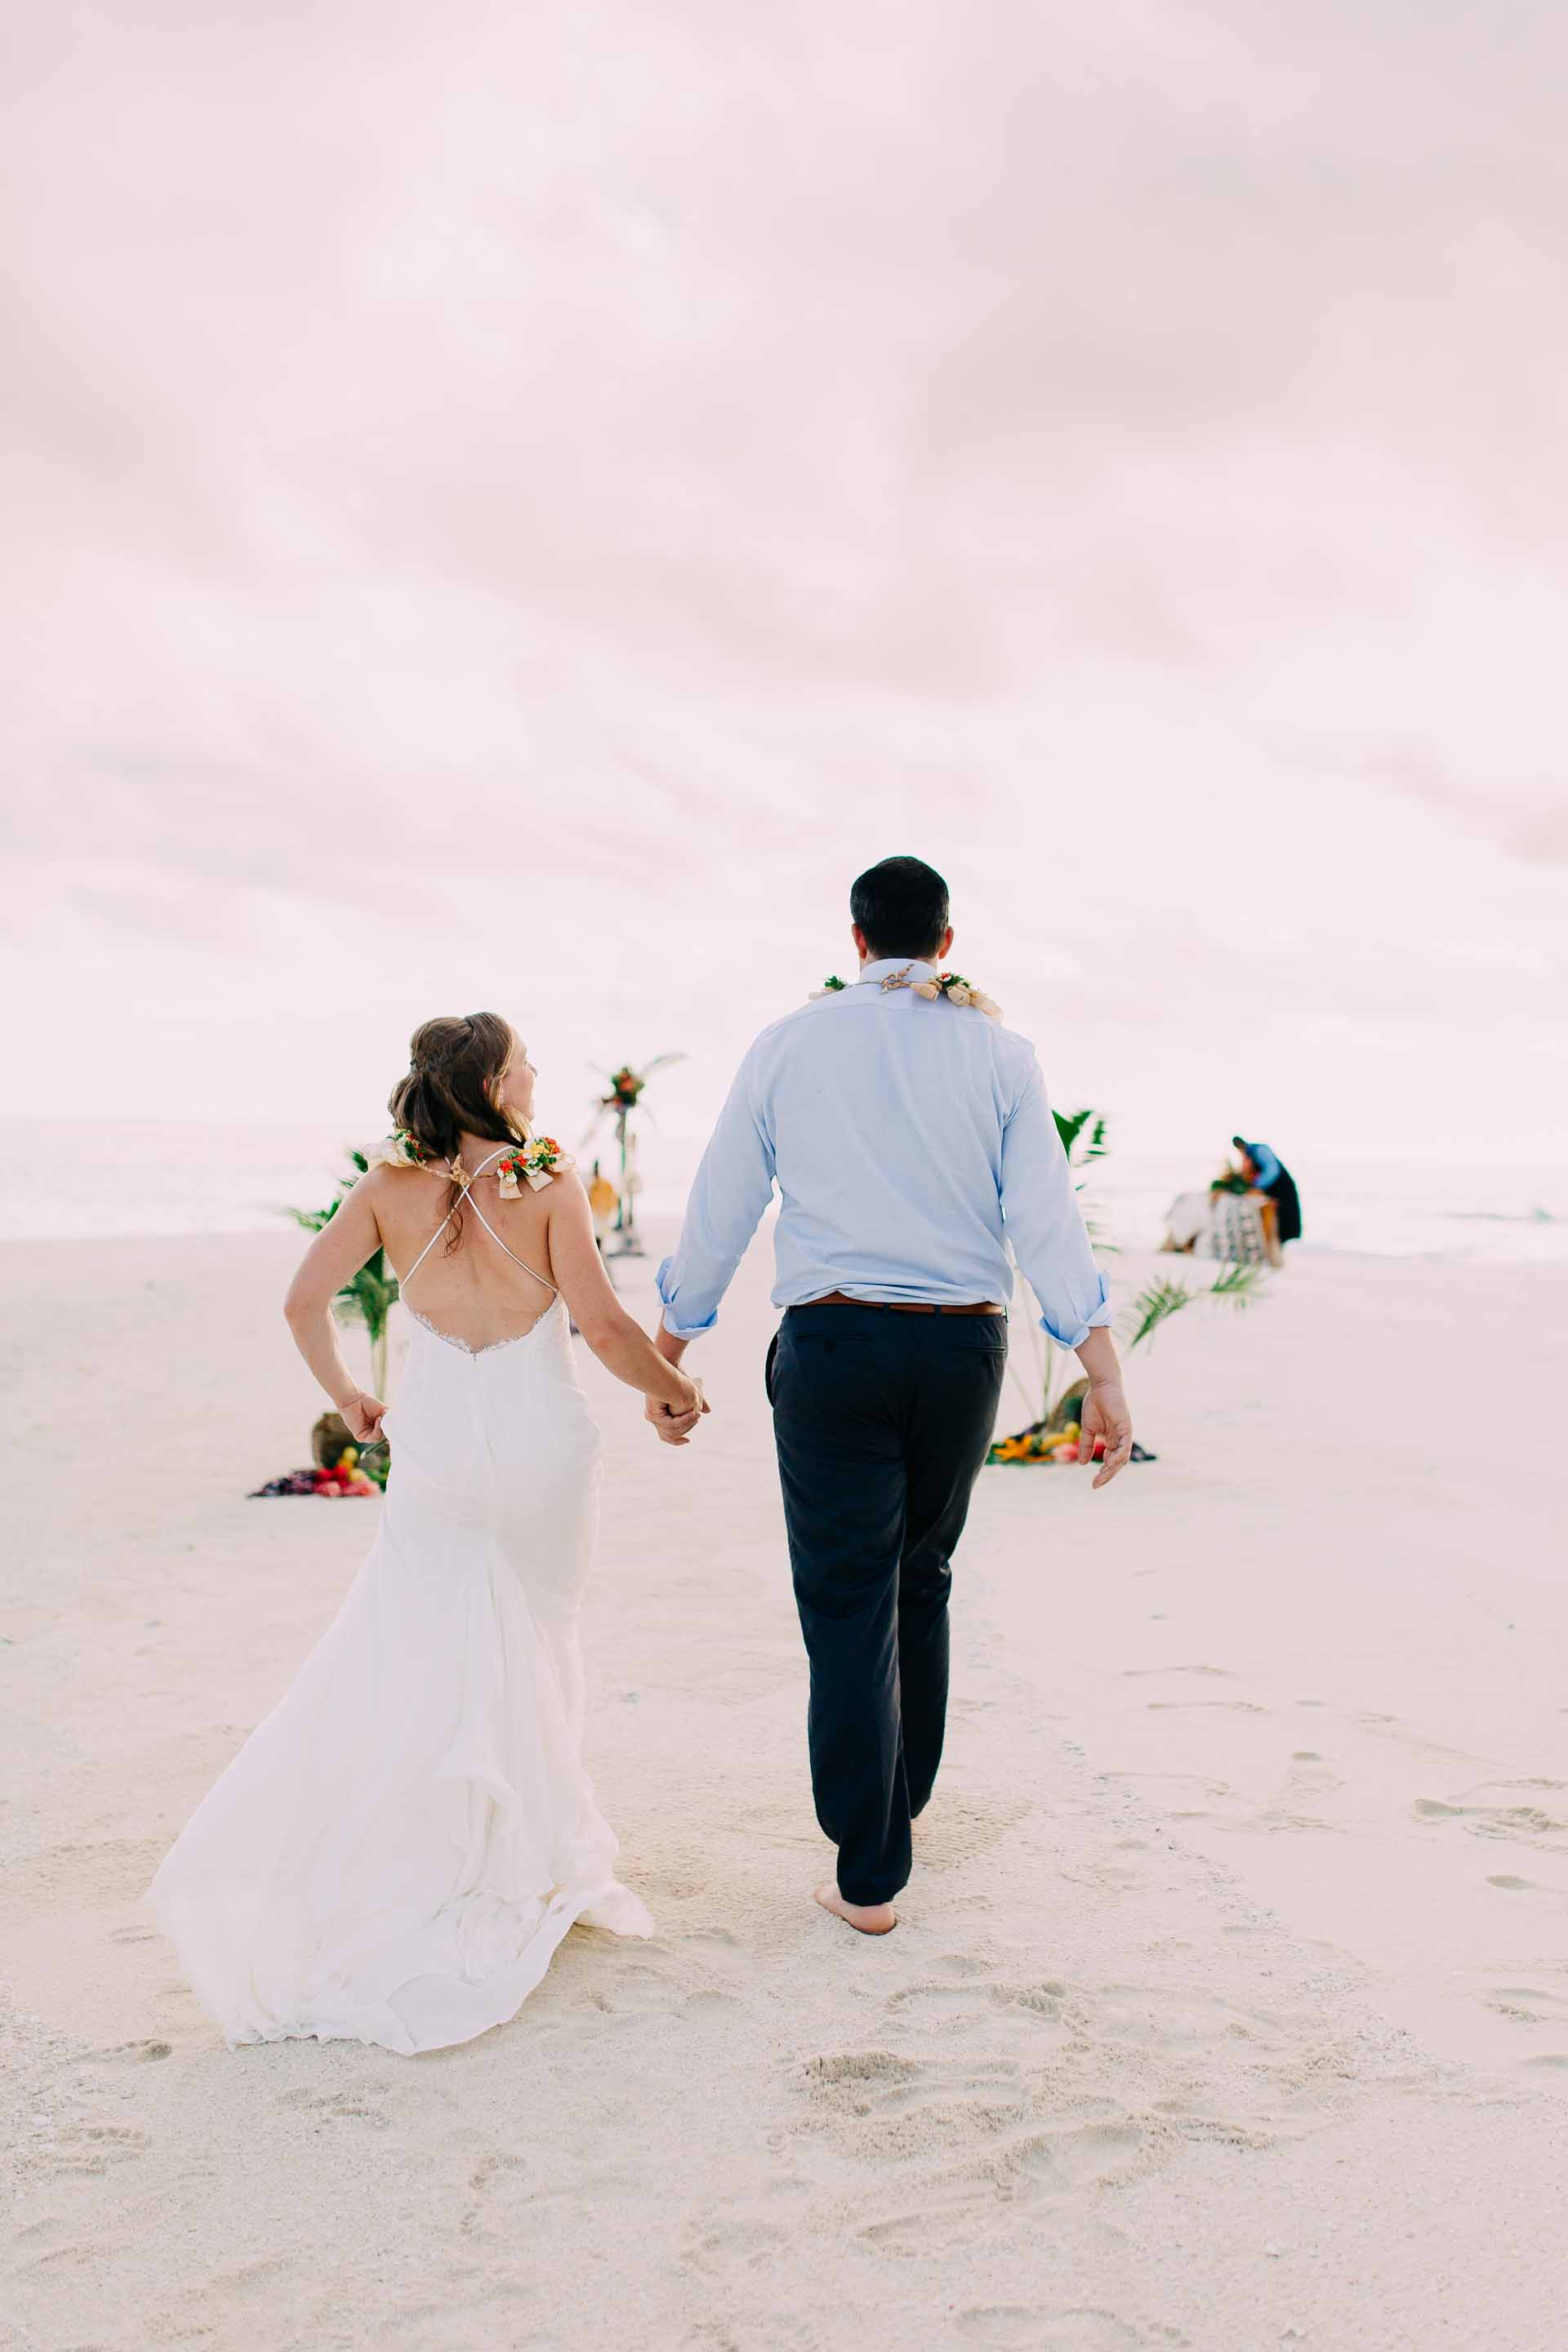 Bride and Groom walk up the aisle to exchange vows at their sand bar wedding.